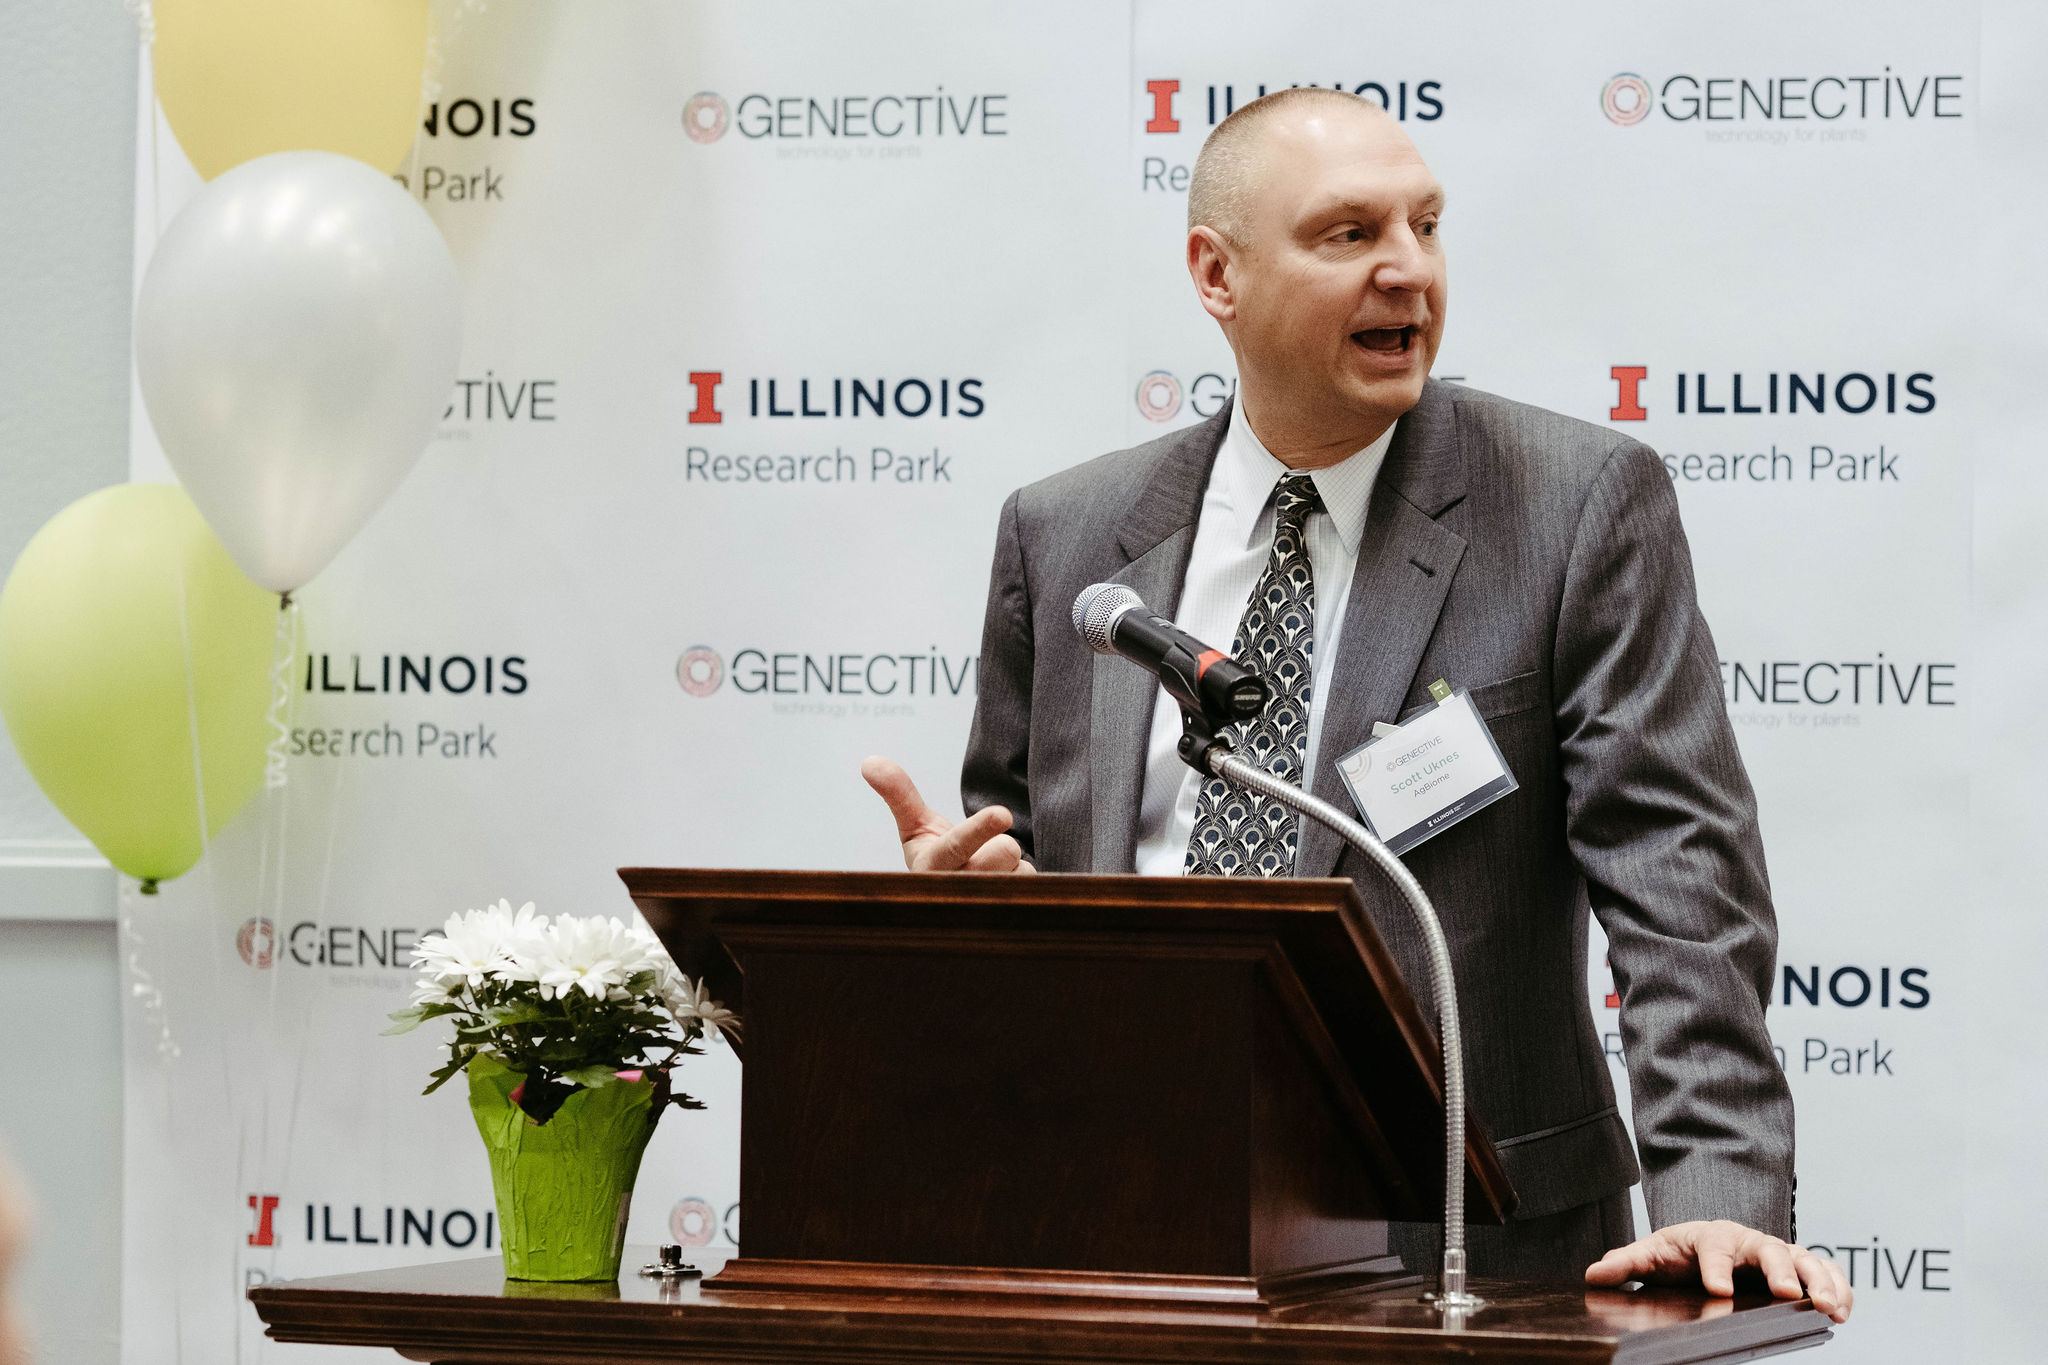 Talks at the Genective Grand Opening